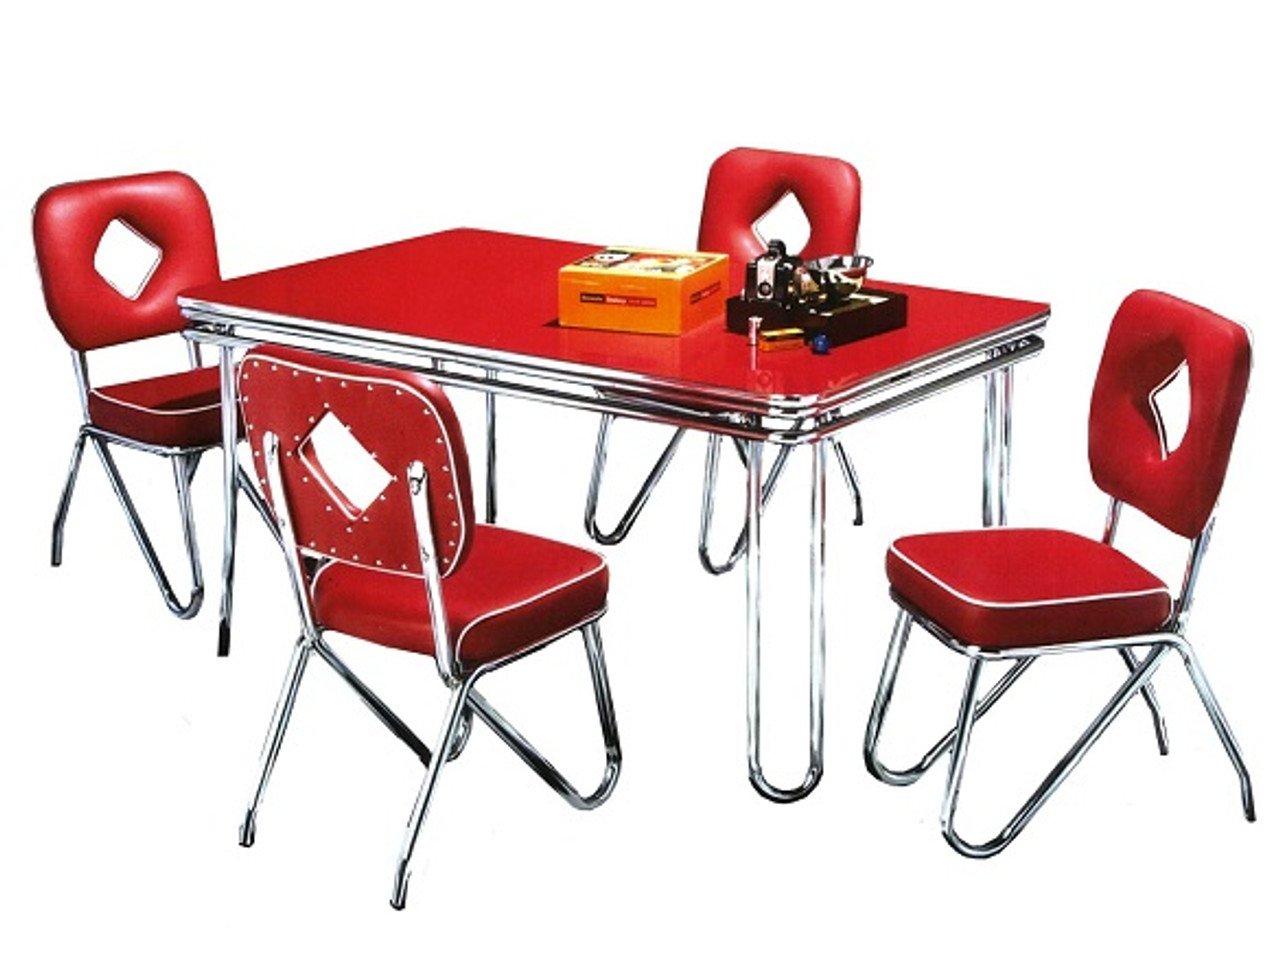 Hit Parade 9s Formica Kitchen Table and Chairs